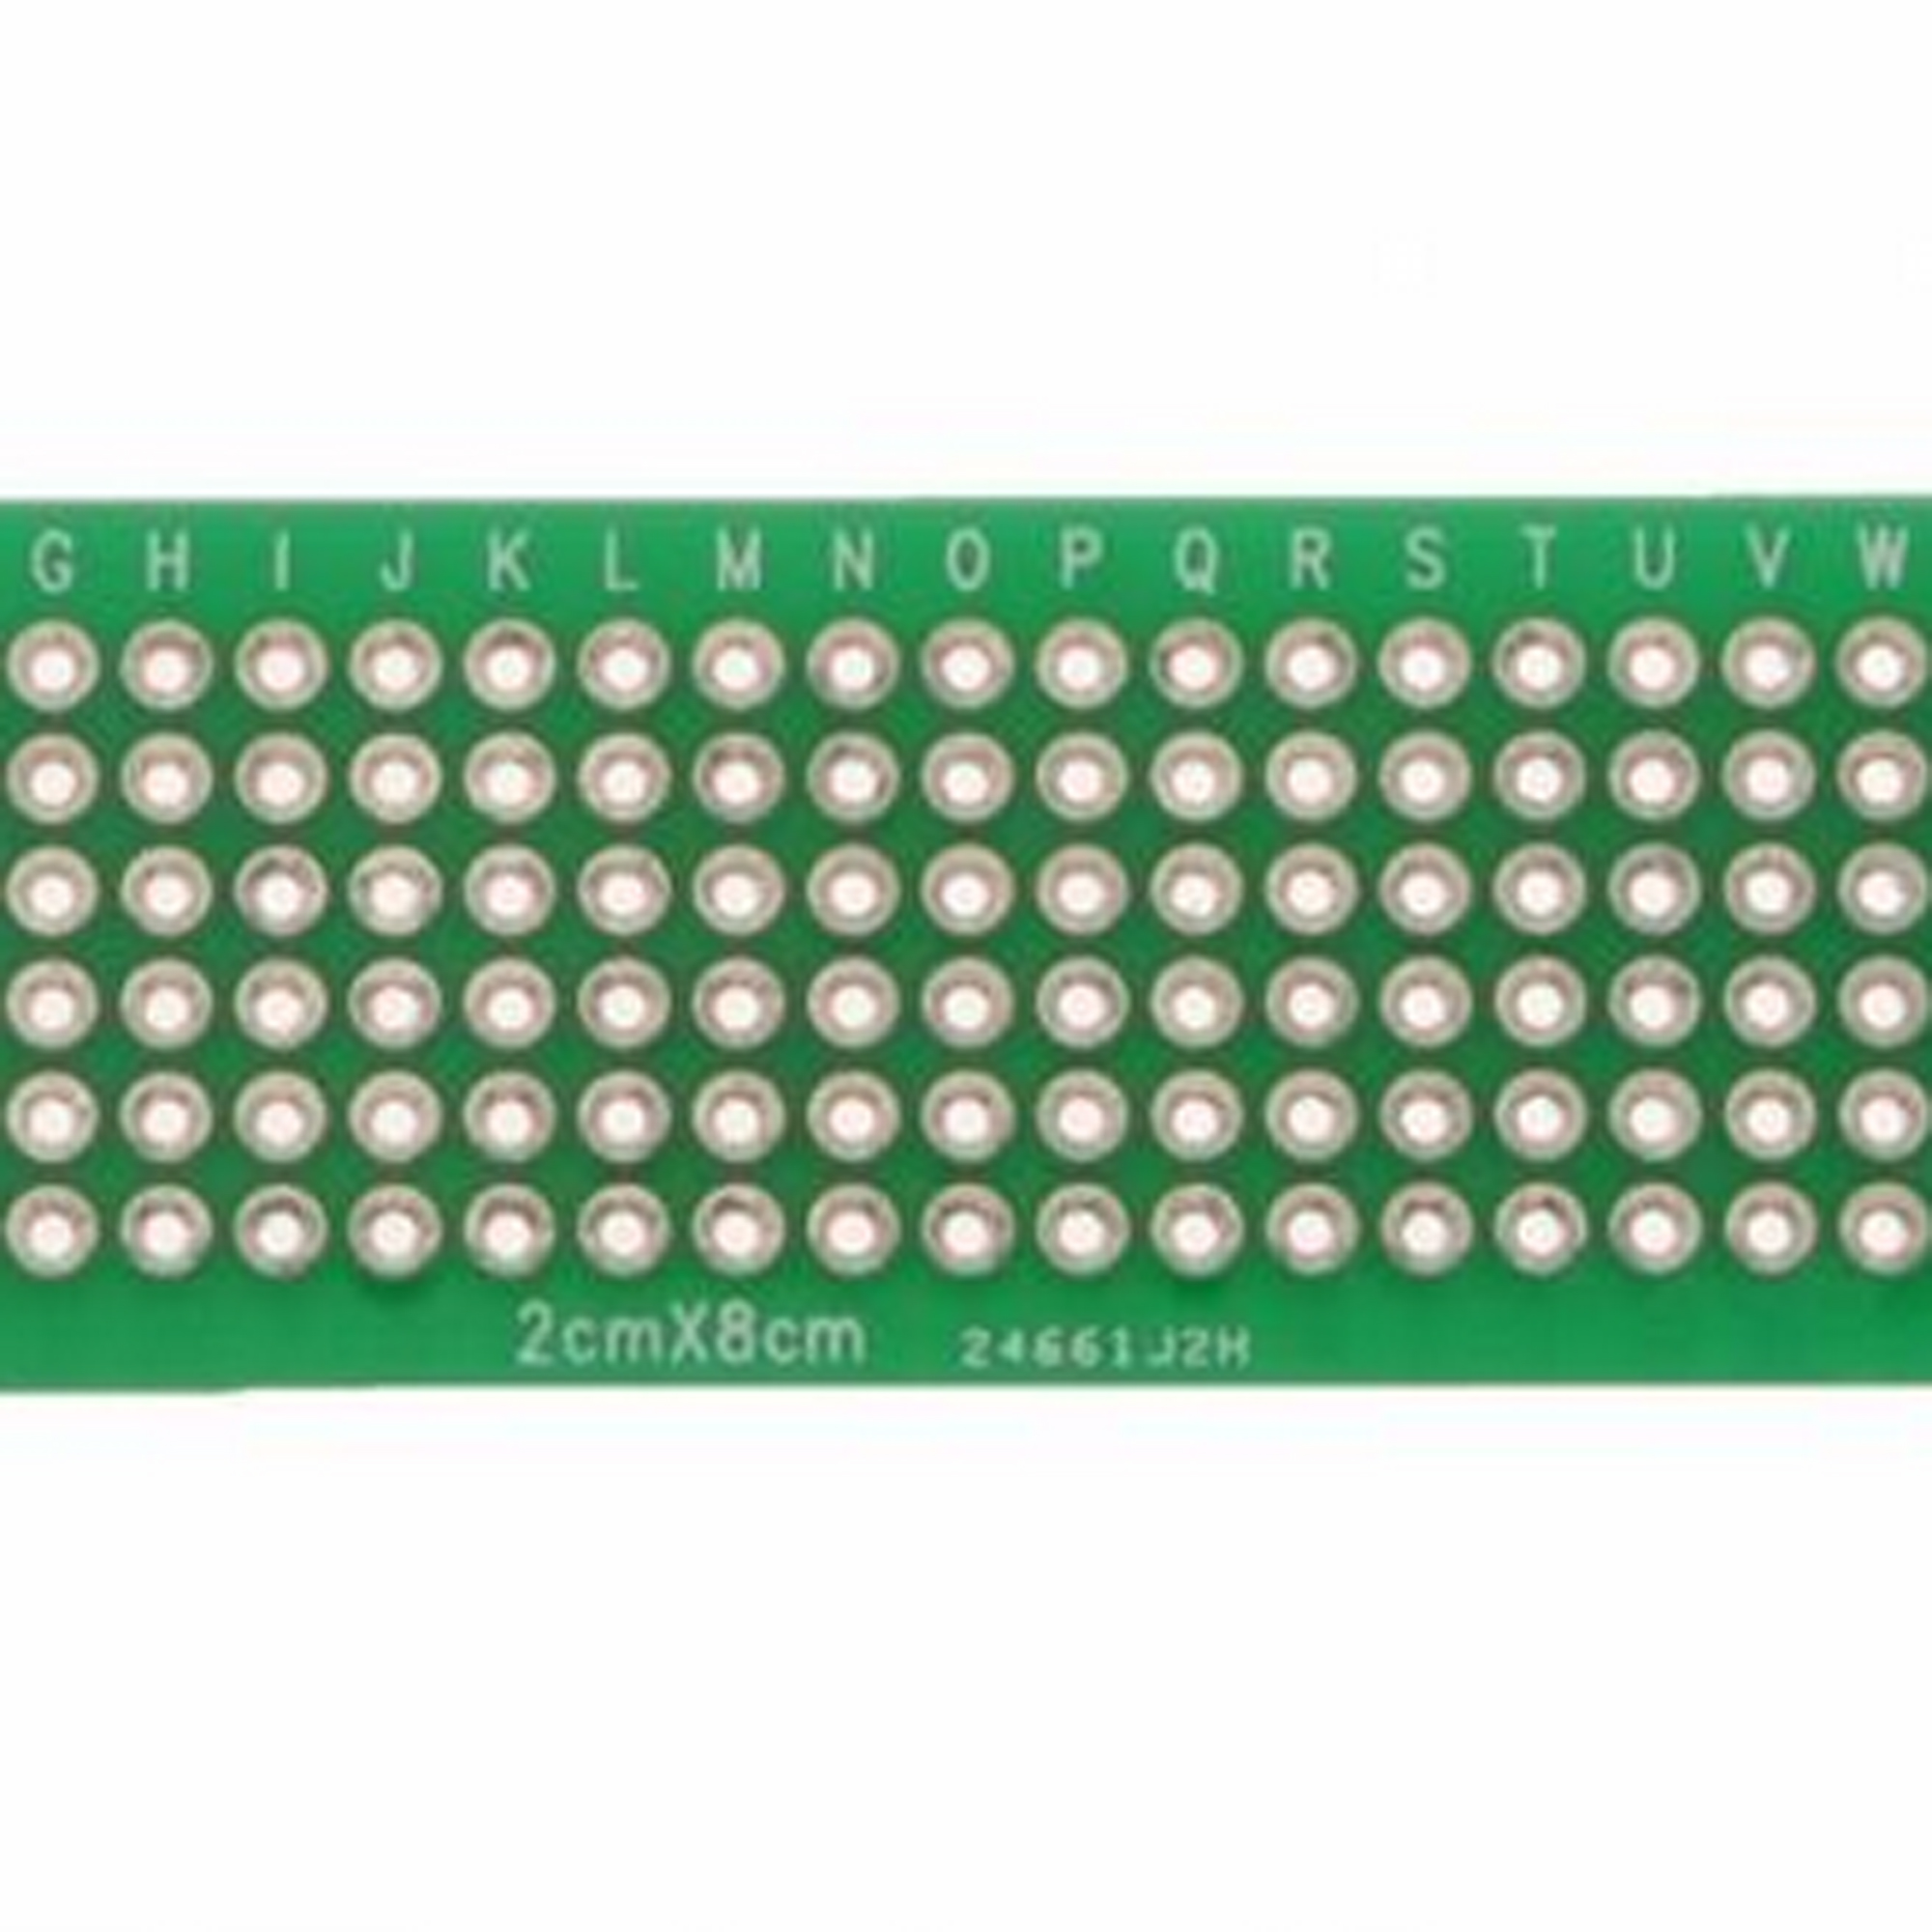 20pcs Prototype Pcb Bread Board Tinned Universal 2x8 Cm Fr4 New Glass Fiber Circuit Boards Caring Double Side